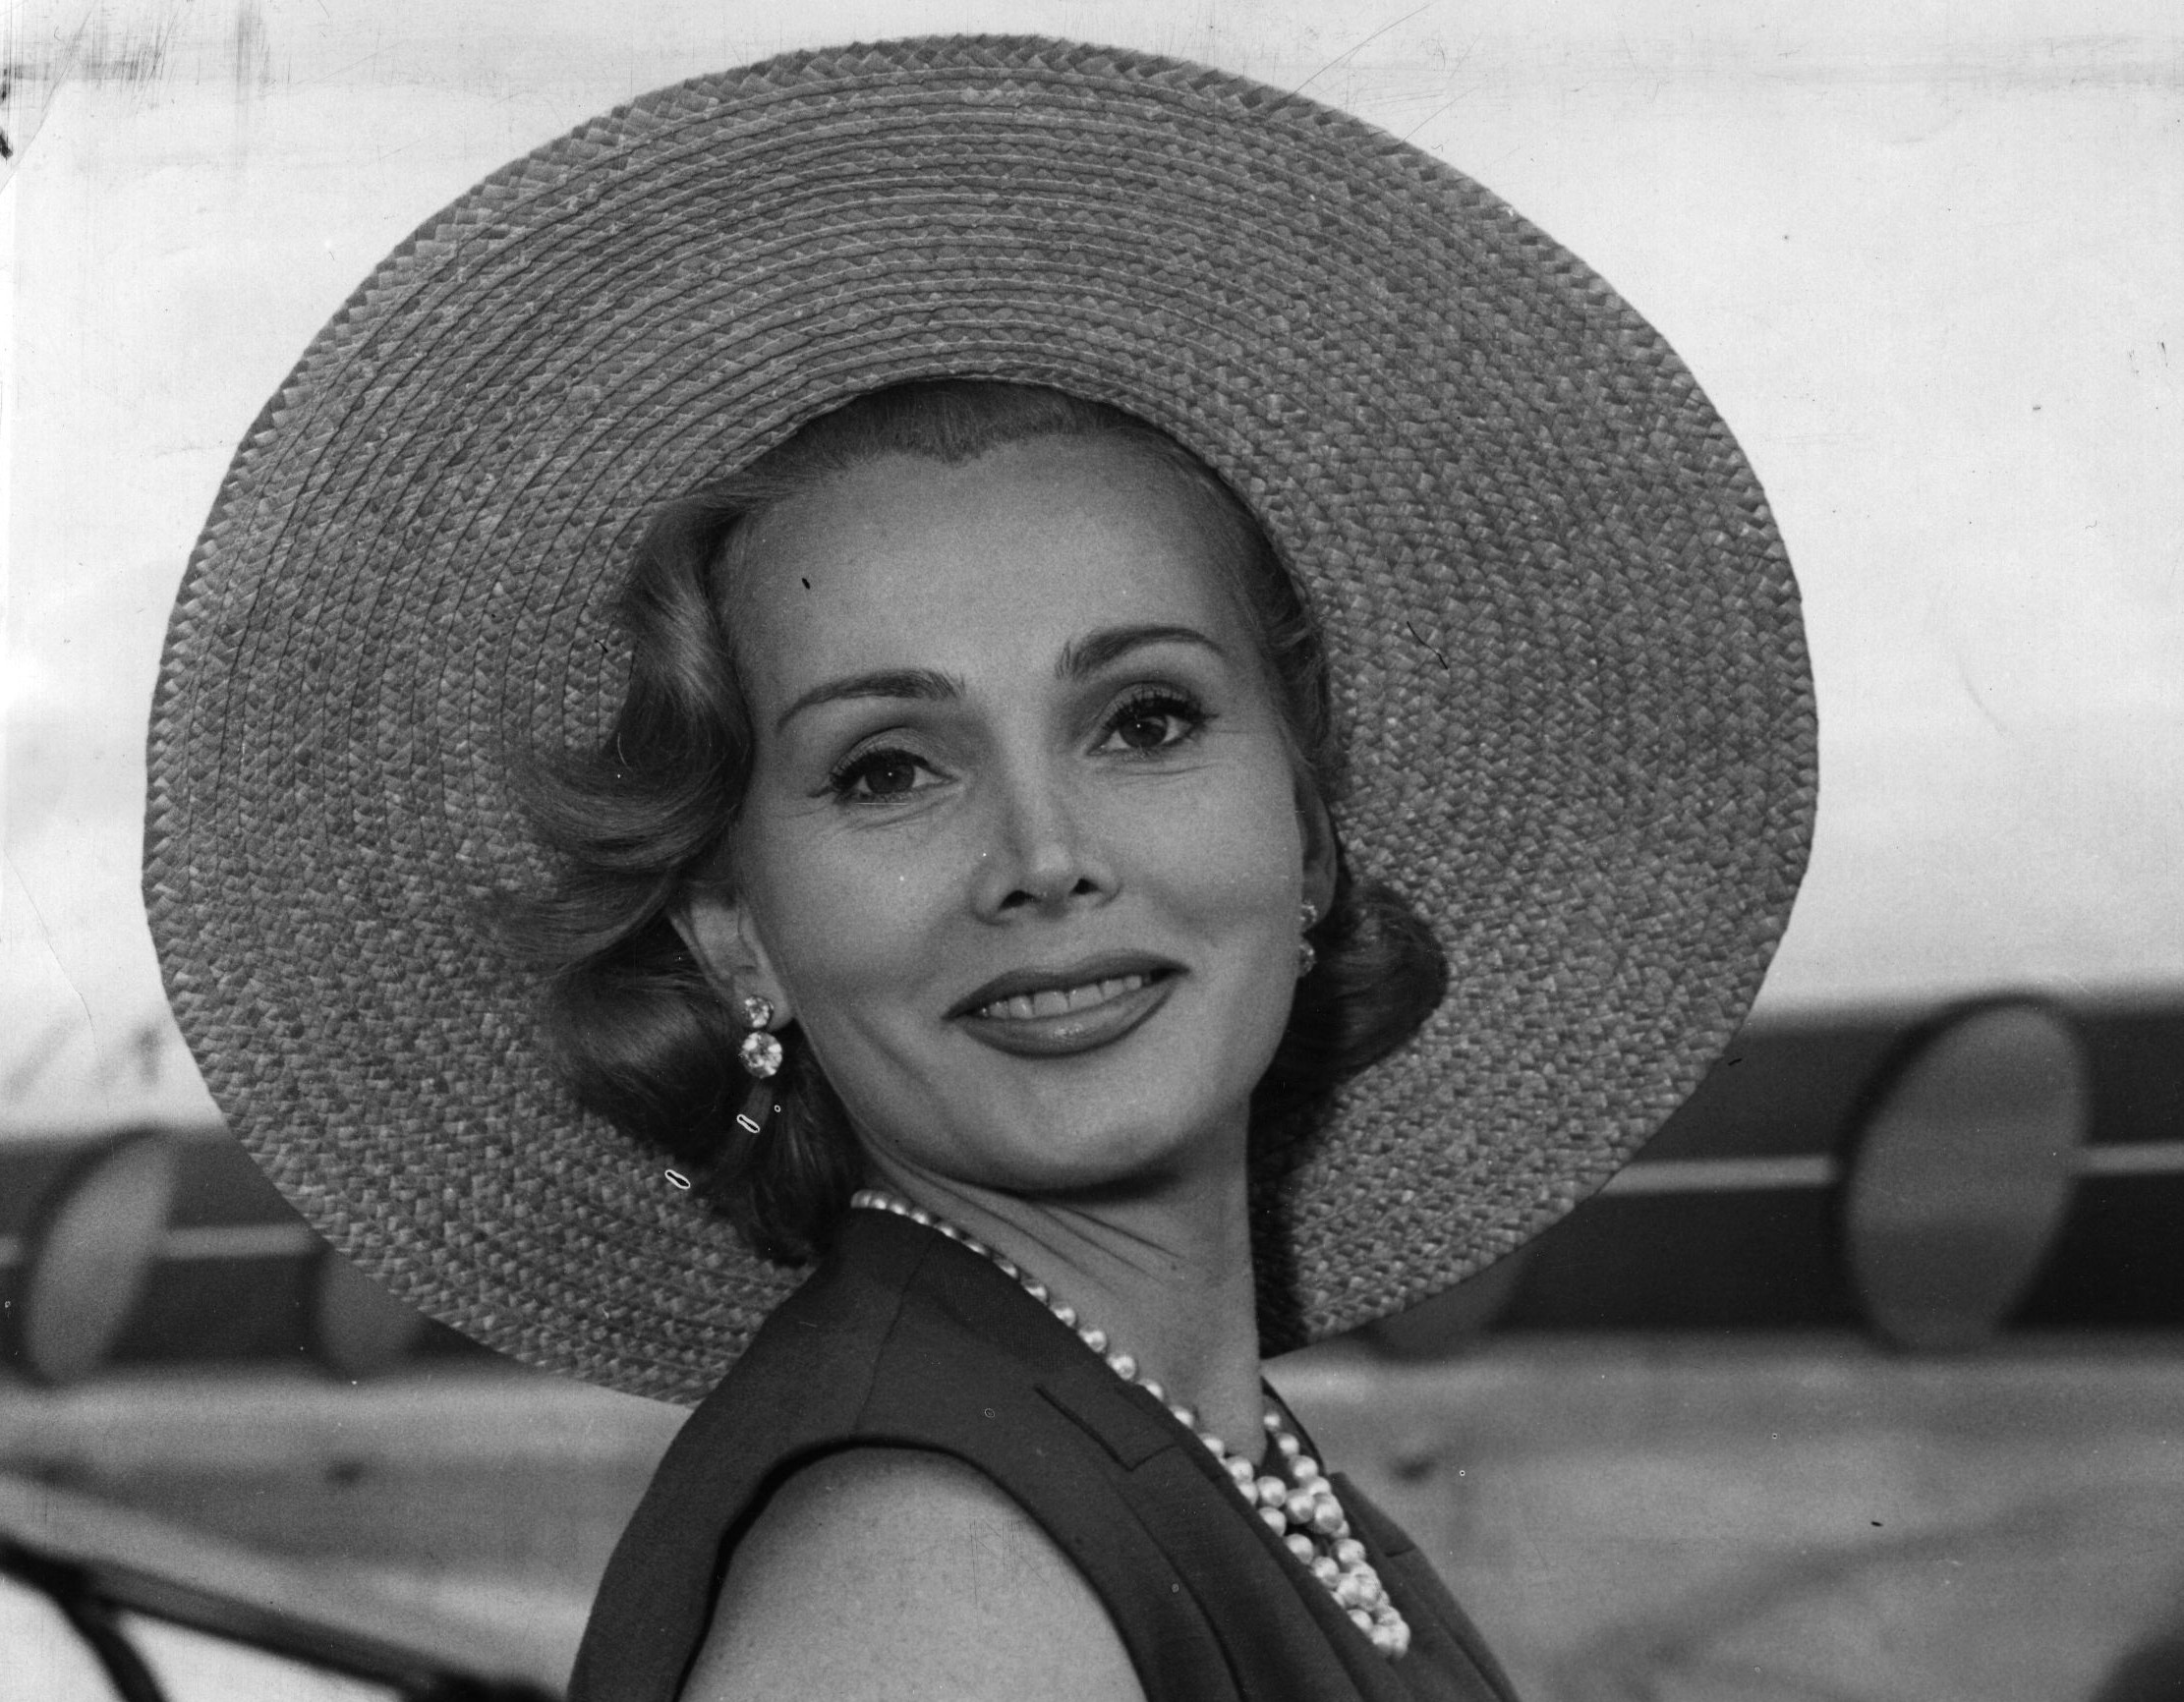 Zsa Zsa Gabor facts